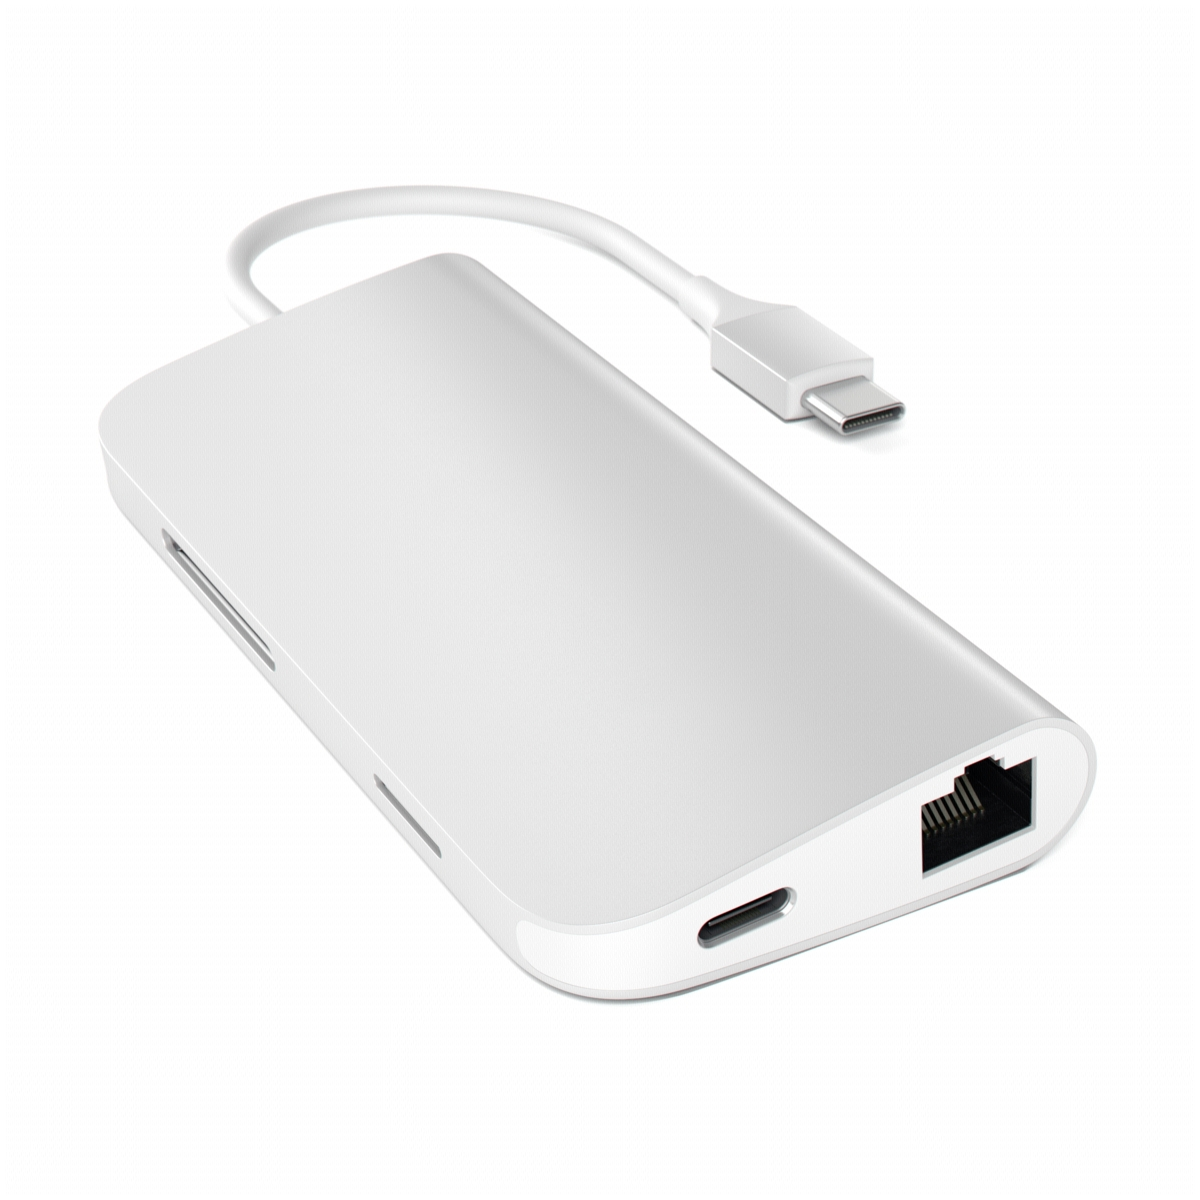 Satechi USB-C Hub, Multi-Port Adapter